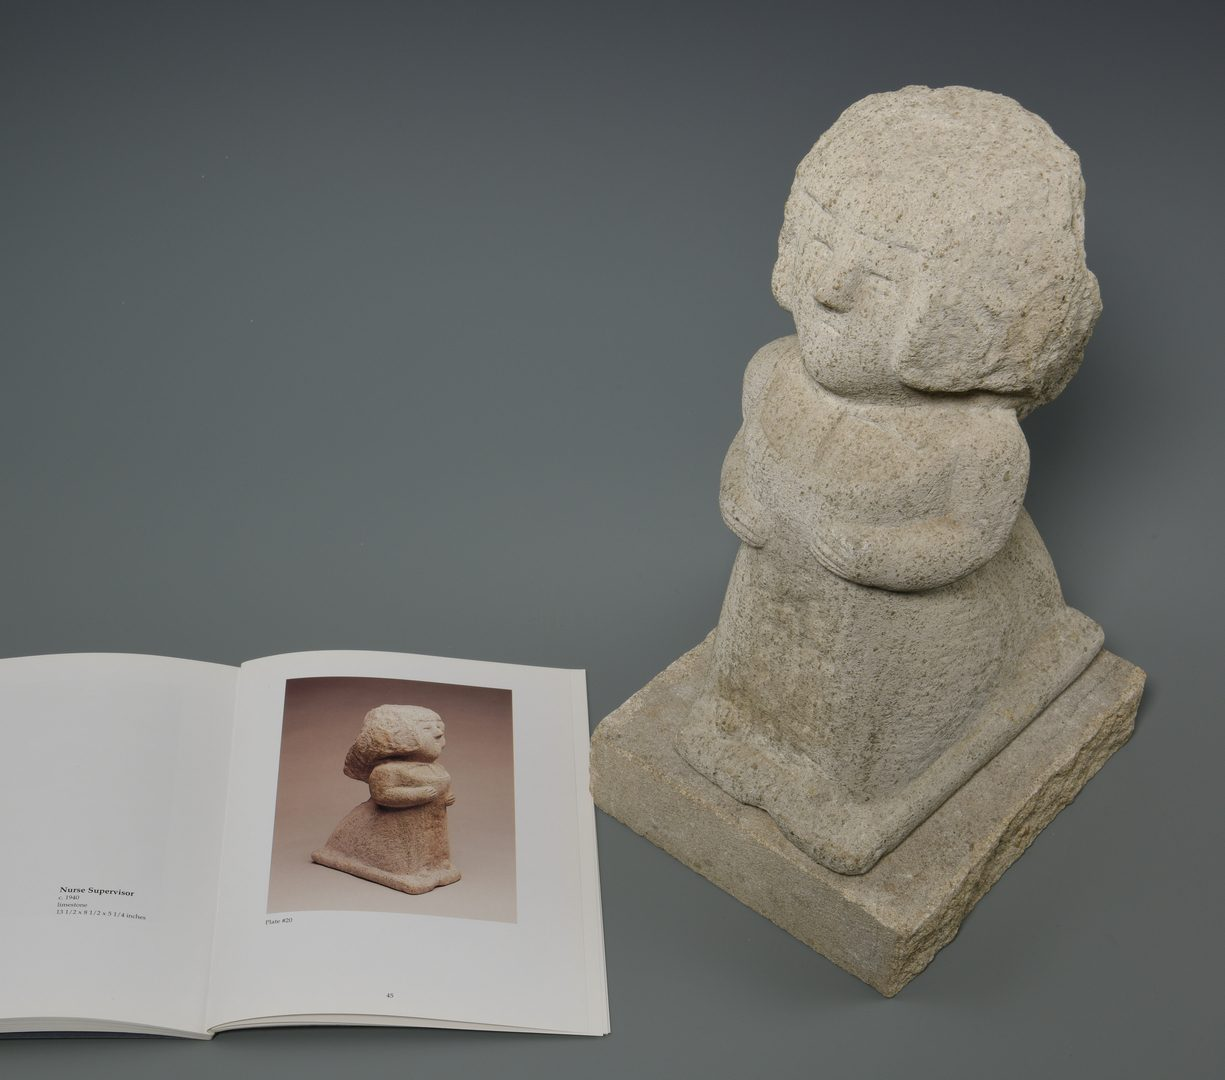 Lot 175: William Edmondson Sculpture, Nursing Supervisor